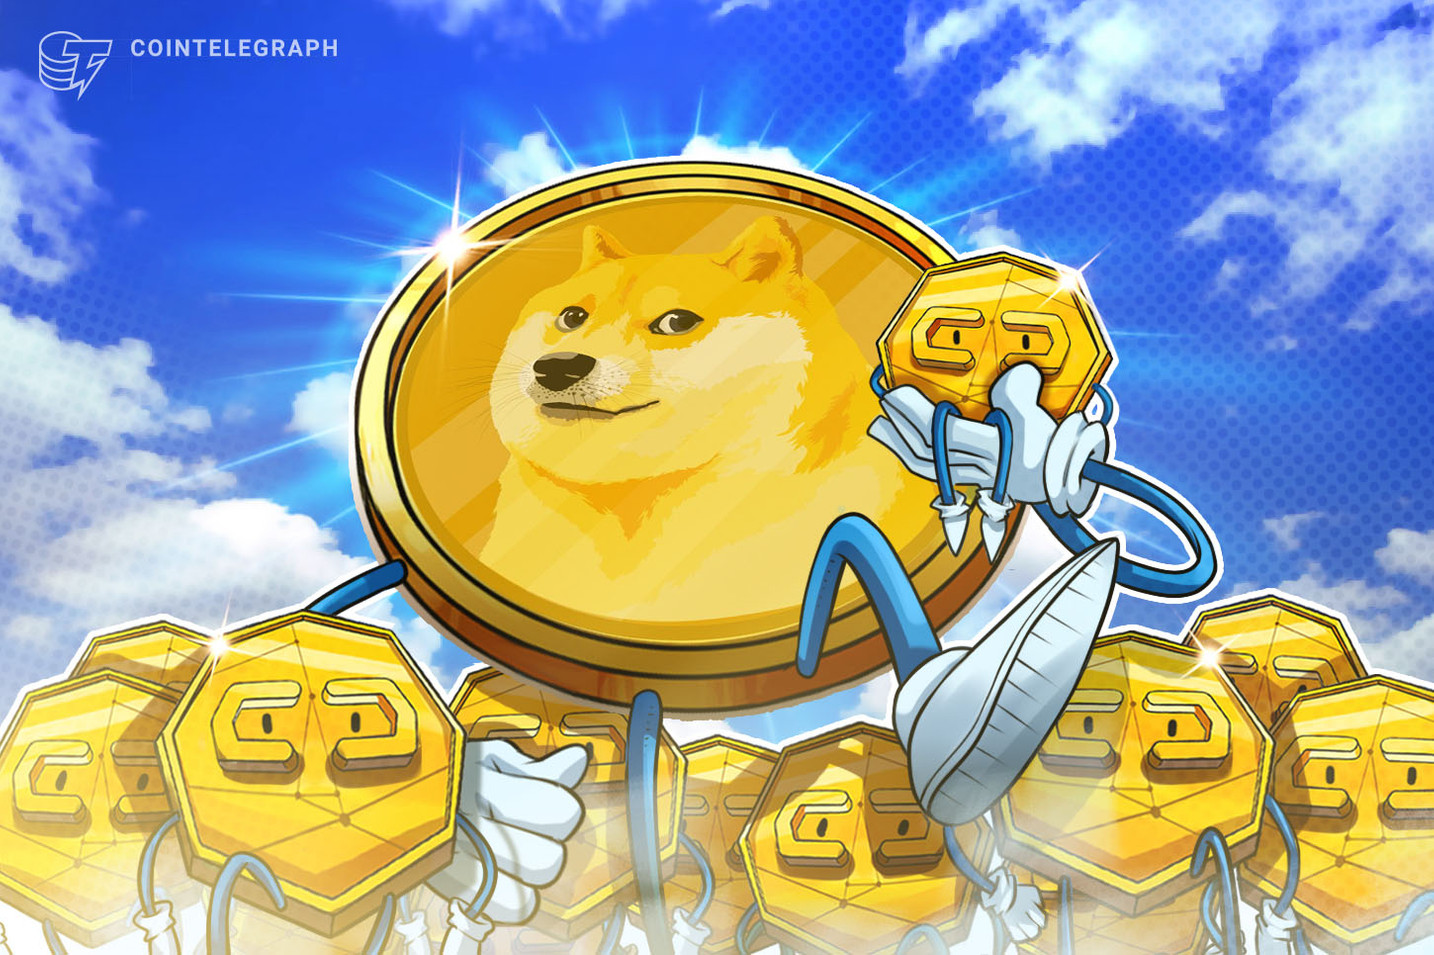 Not going anyplace  for a while? Grab a Dogecoin, says Snickers candy